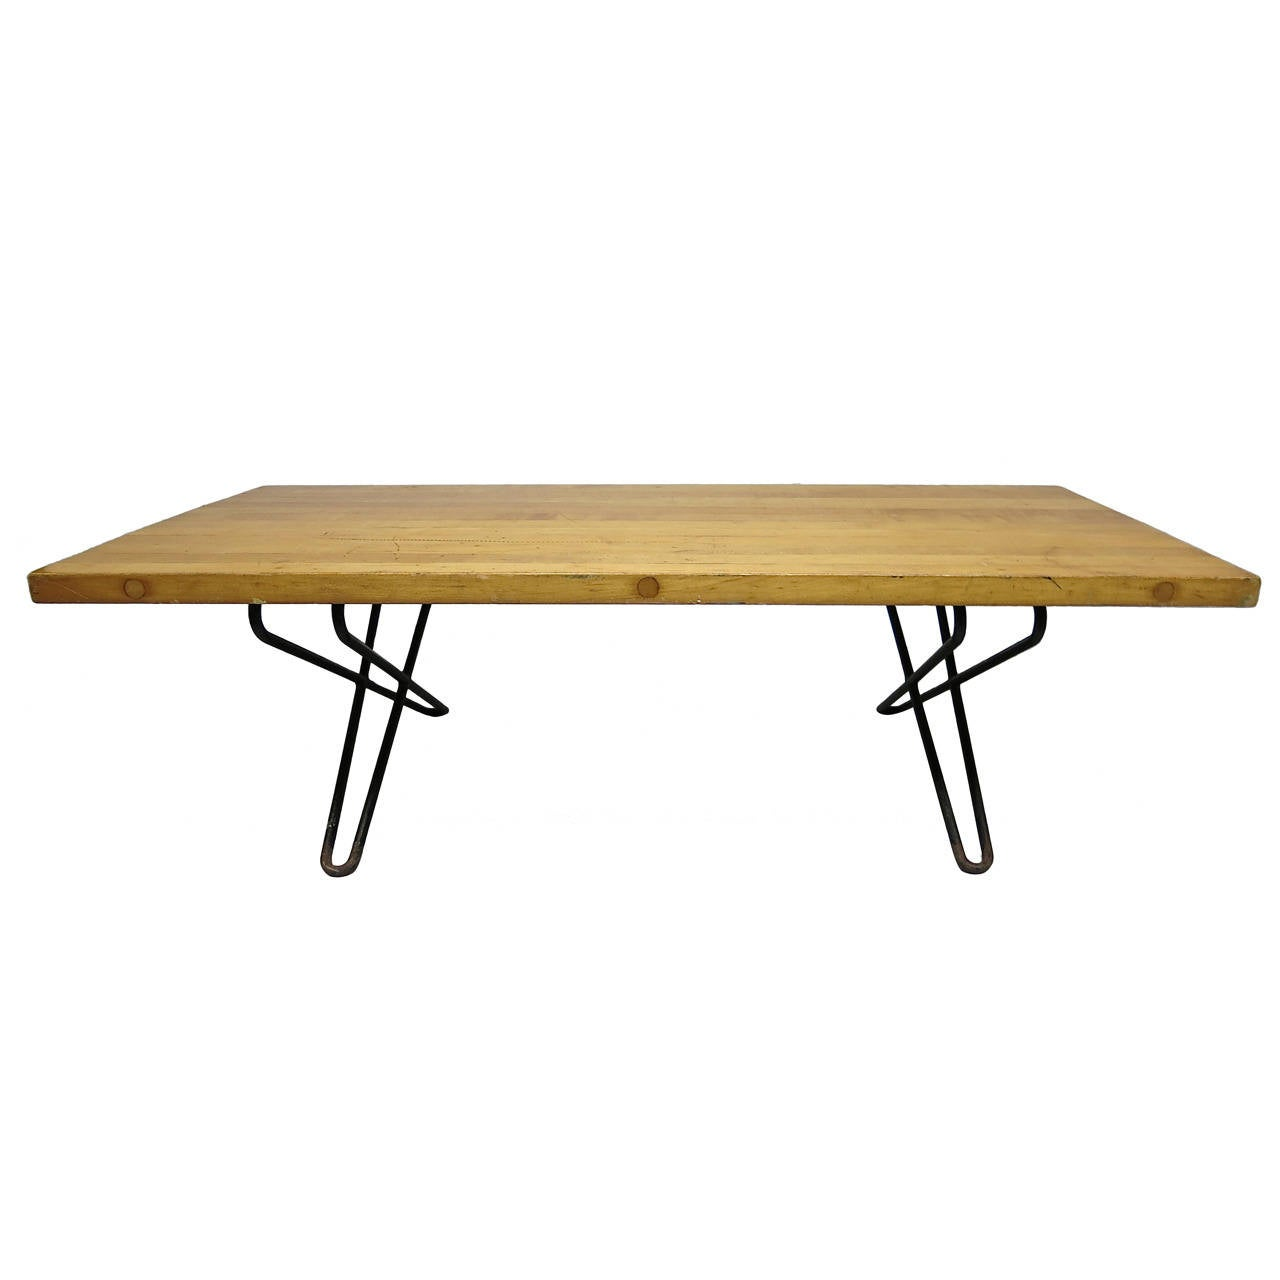 Coffee Table Designed By Henry Robert Kann For Knoll In 1953 Made Usa